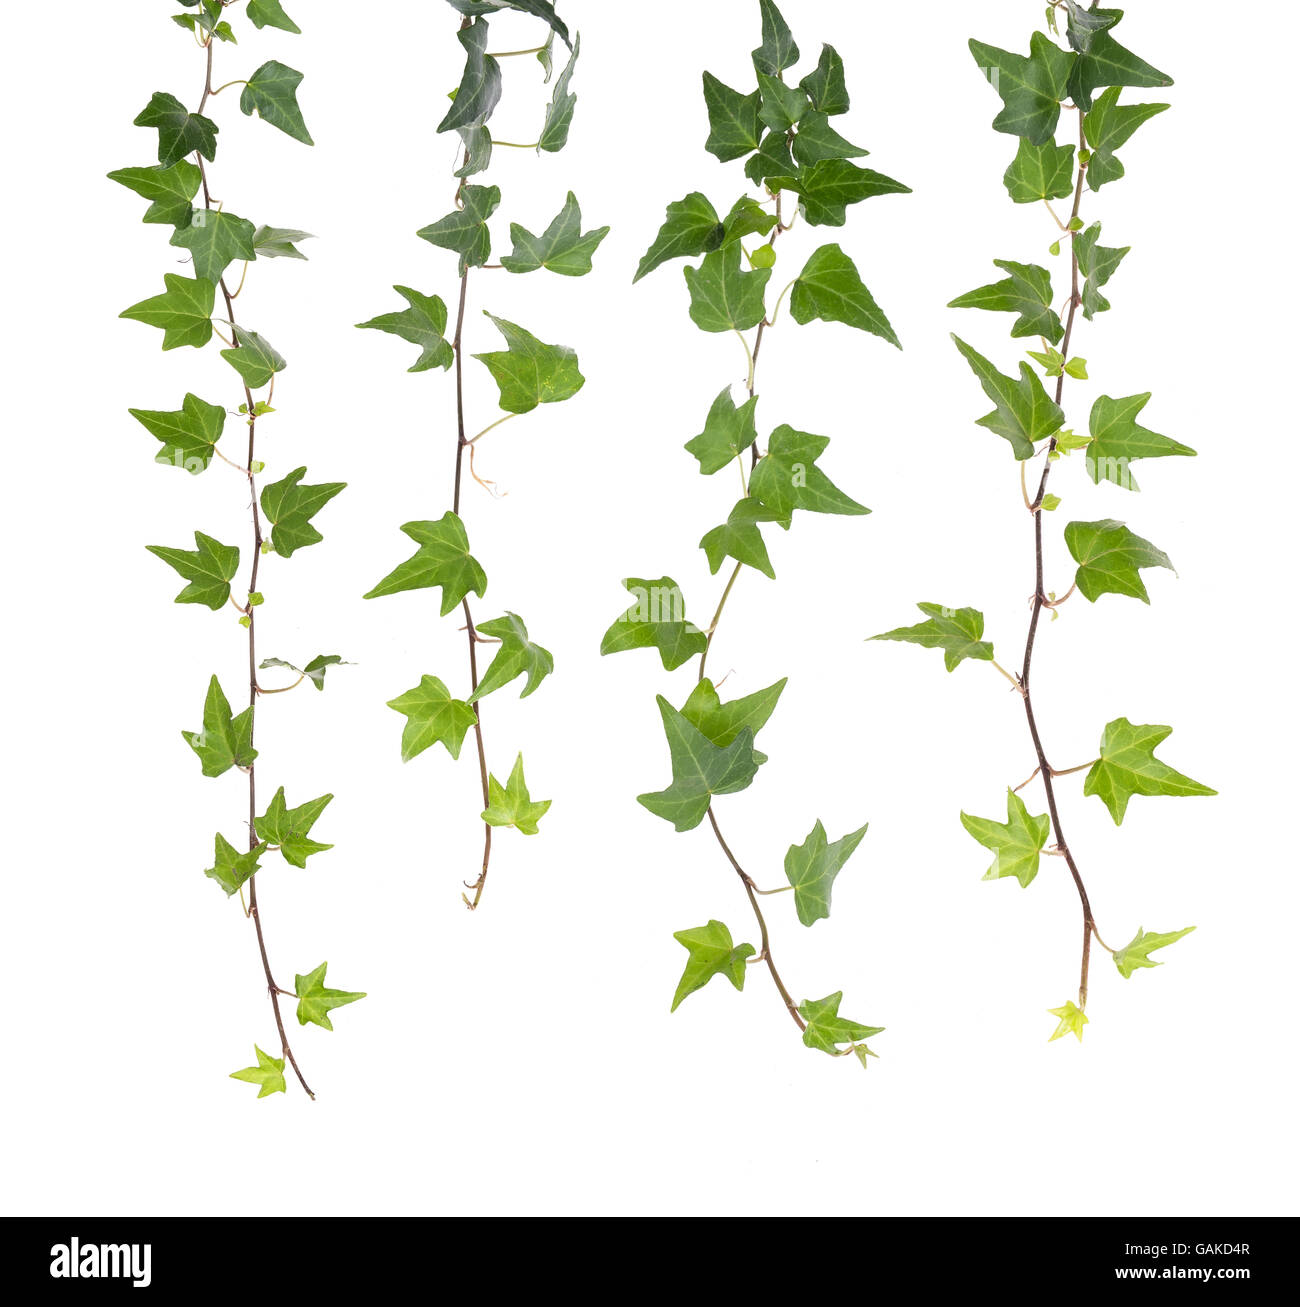 ivy leaves isolated on a white background - Stock Image